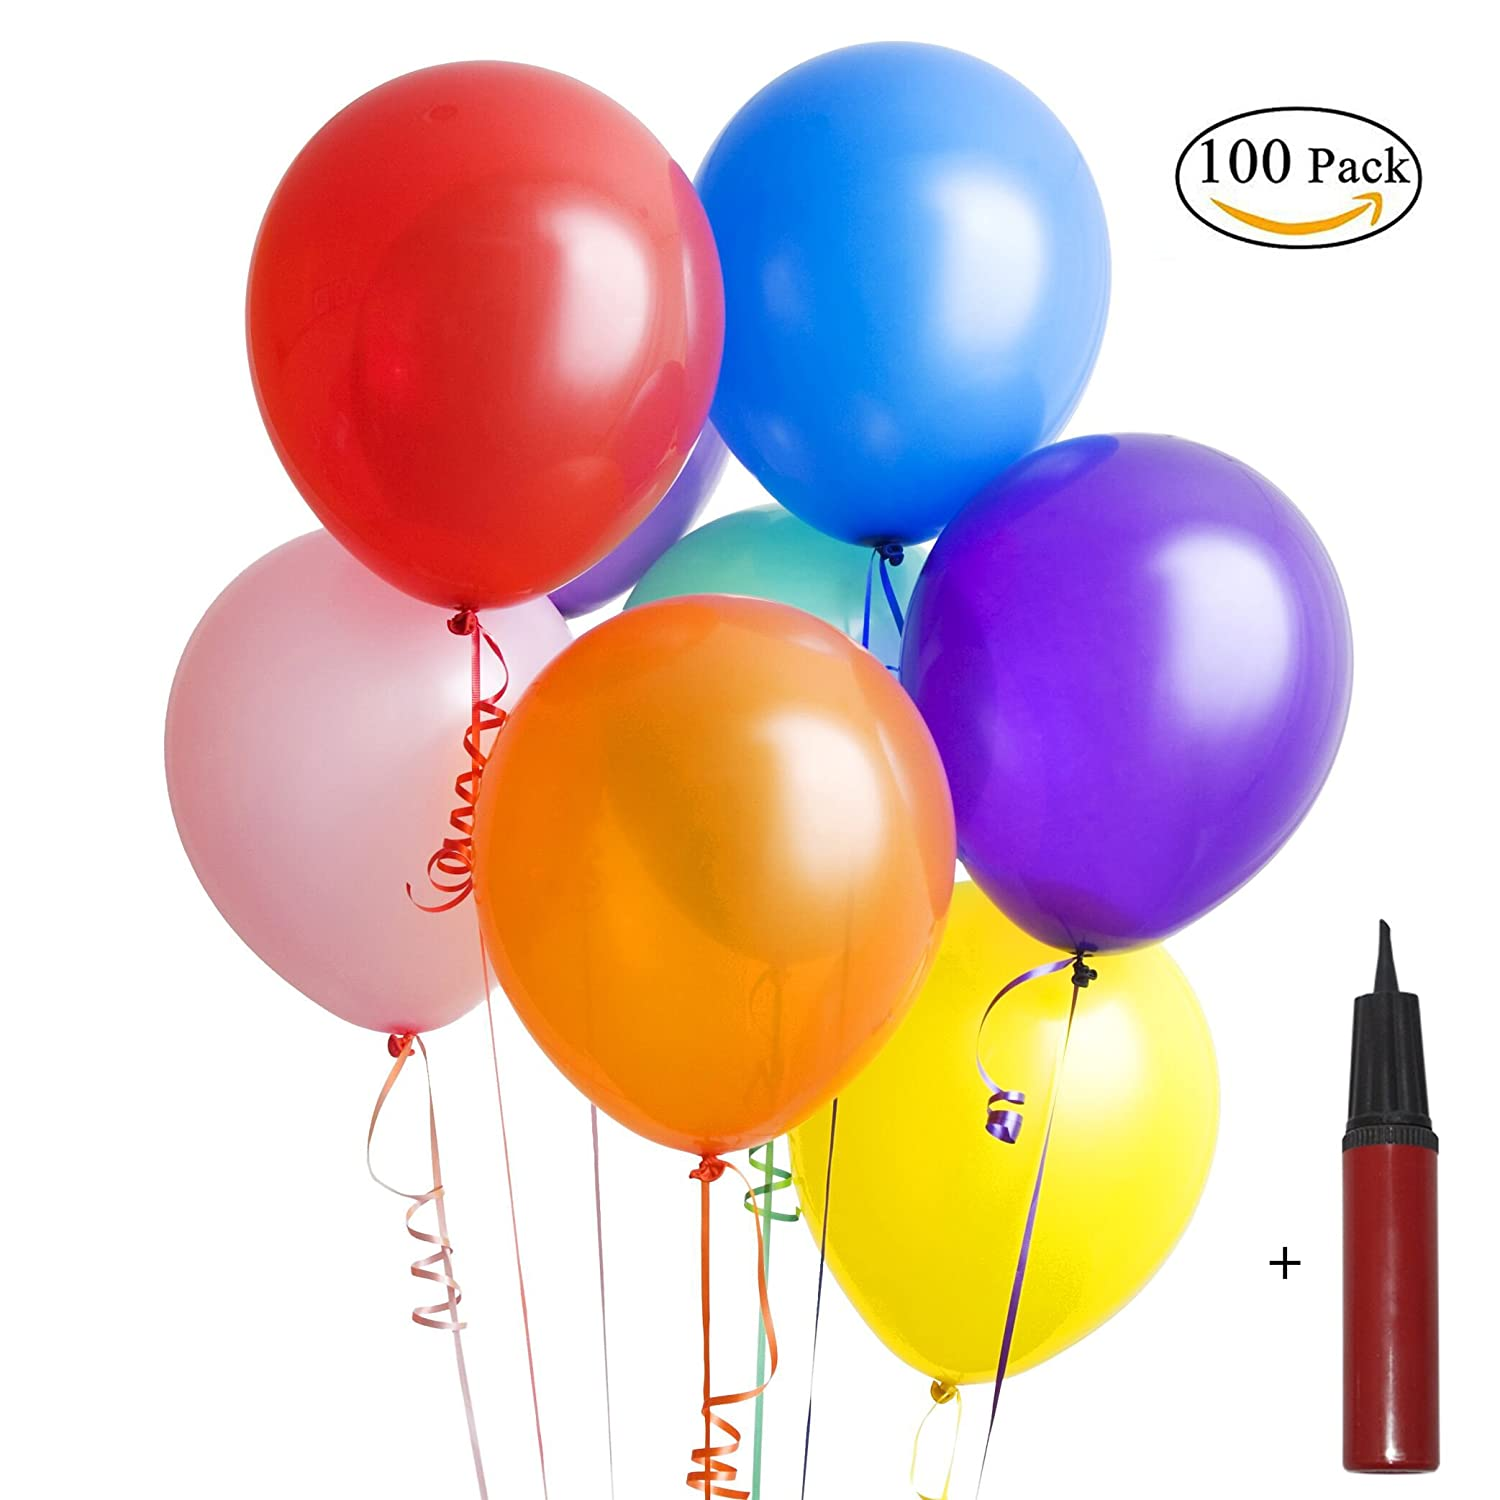 Fooxon Balloons, Assorted Colour Latex Party Balloons 10 Inch 100PCS with Pump for Party Birthday Weddings (Random Colour)